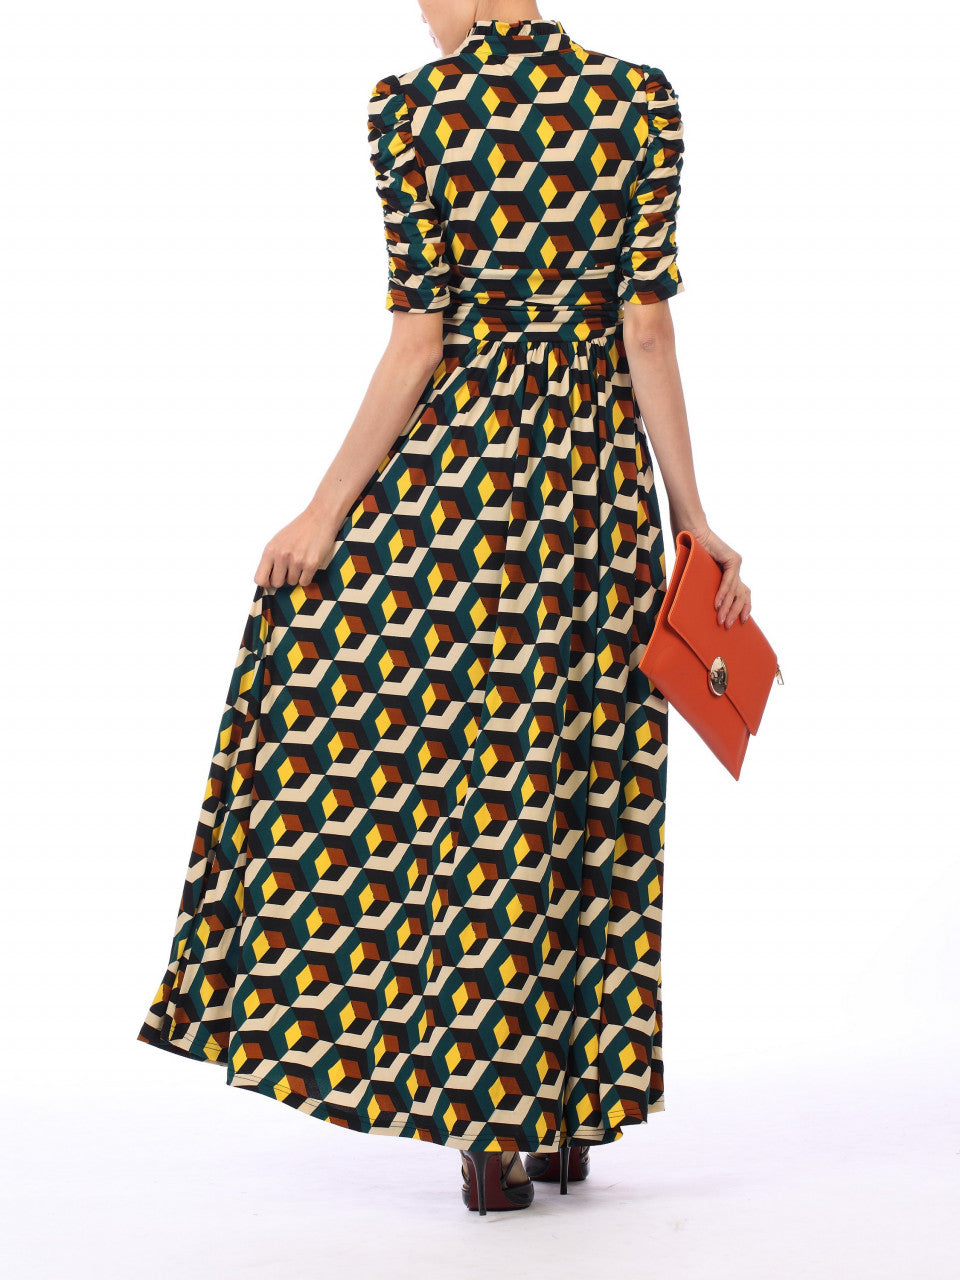 d7a1daba8b ... Load image into Gallery viewer, Jolie Moi Tie Collar Maxi Dress, Teal  Geo ...